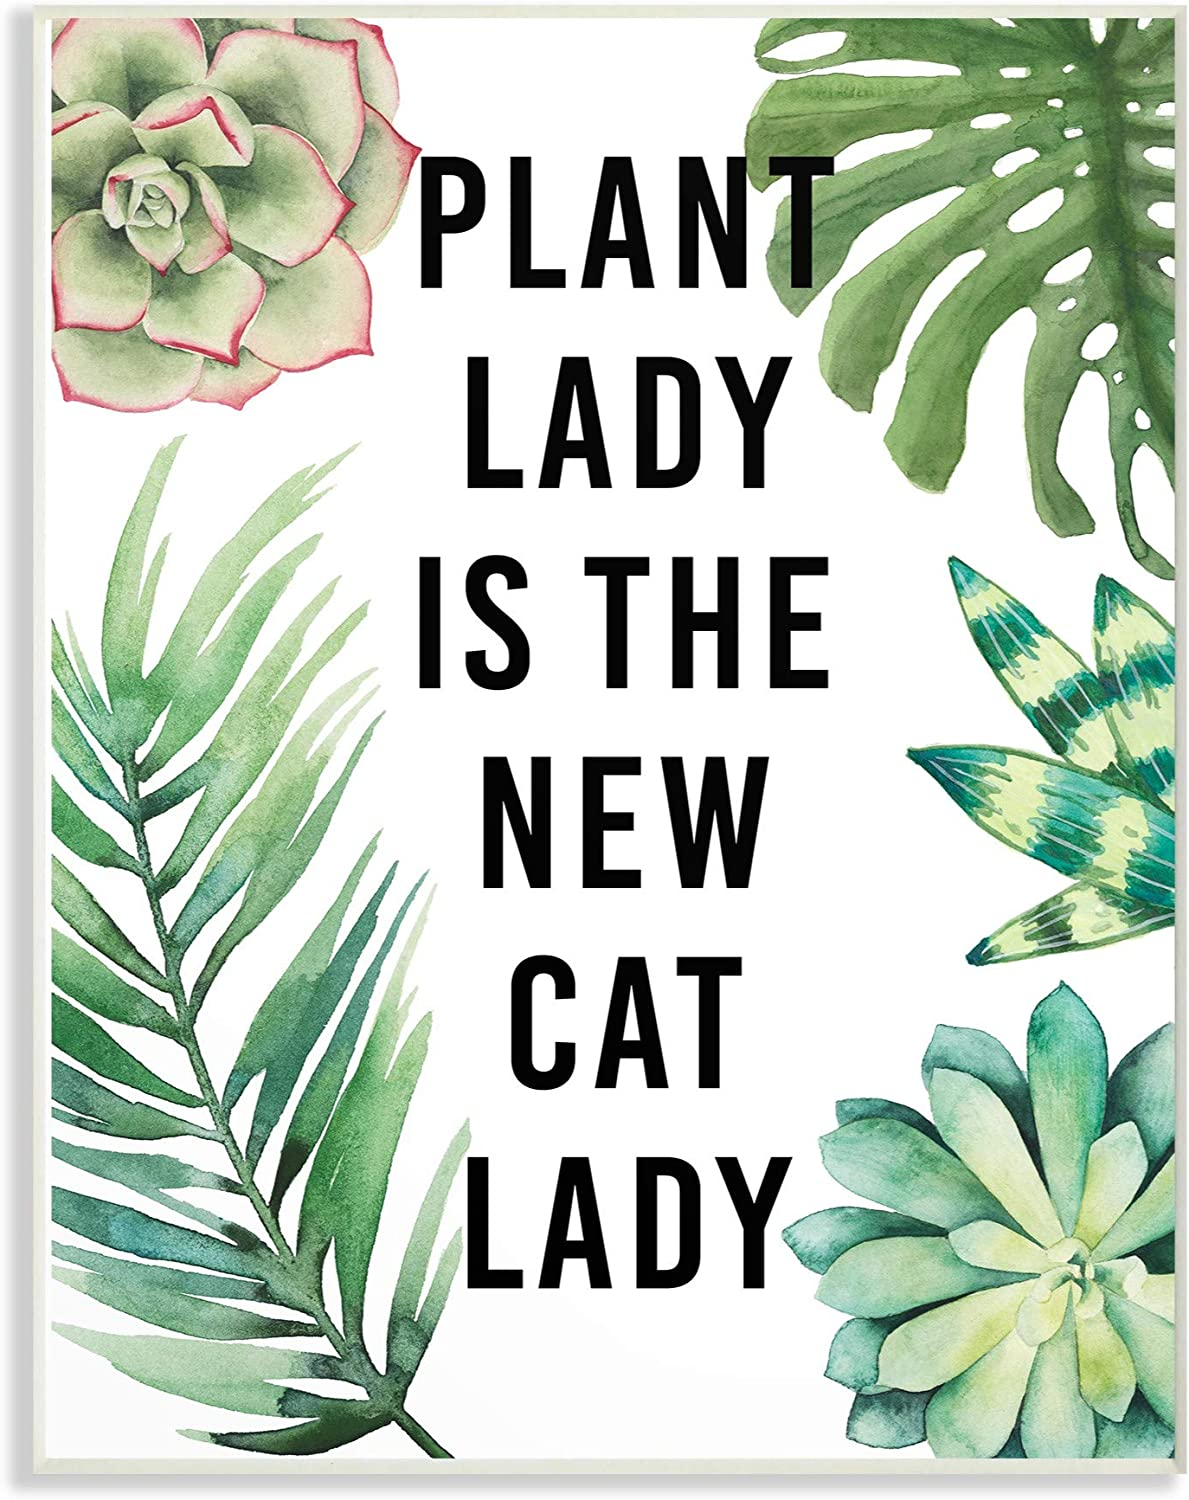 The Stupell Home Decor Collection Plant Lady is the New Cat Lady with Plants Oversized Wall Plaque Art, 12.5 x 0.5 x 18.5, Multicolor